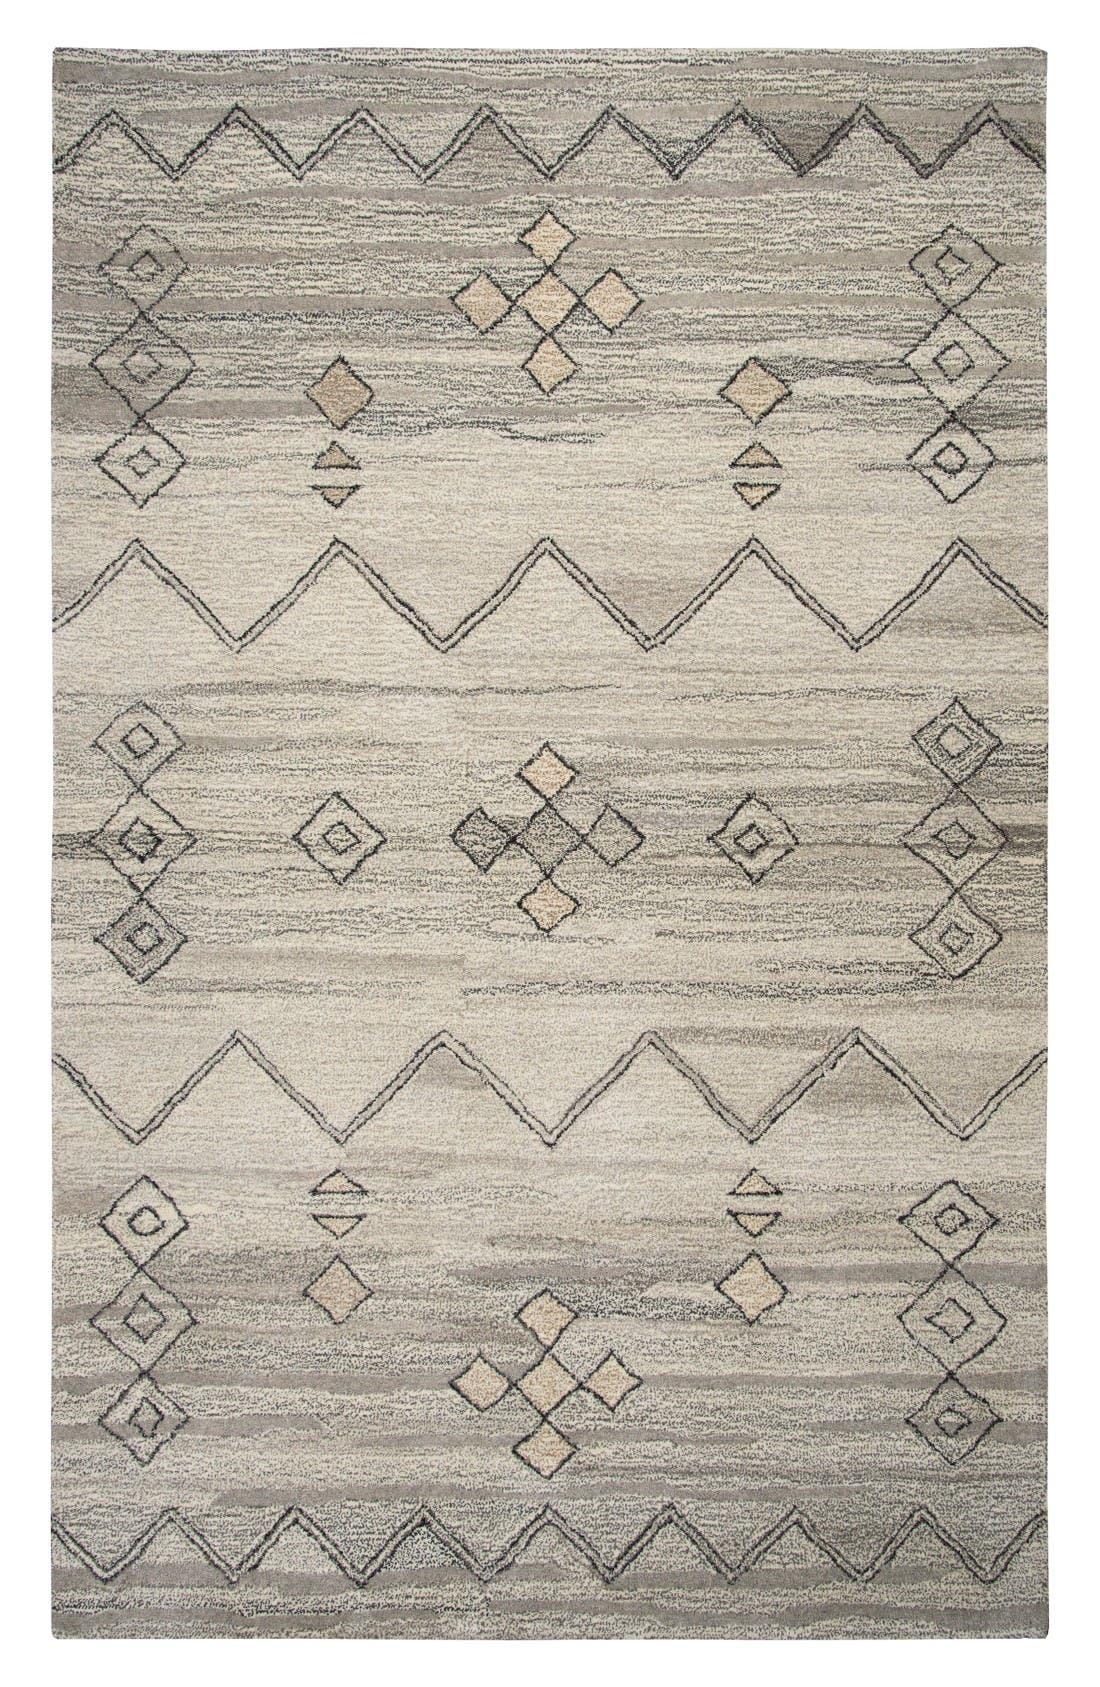 Desert Plains Hand Tufted Wool Area Rug,                         Main,                         color, Grey